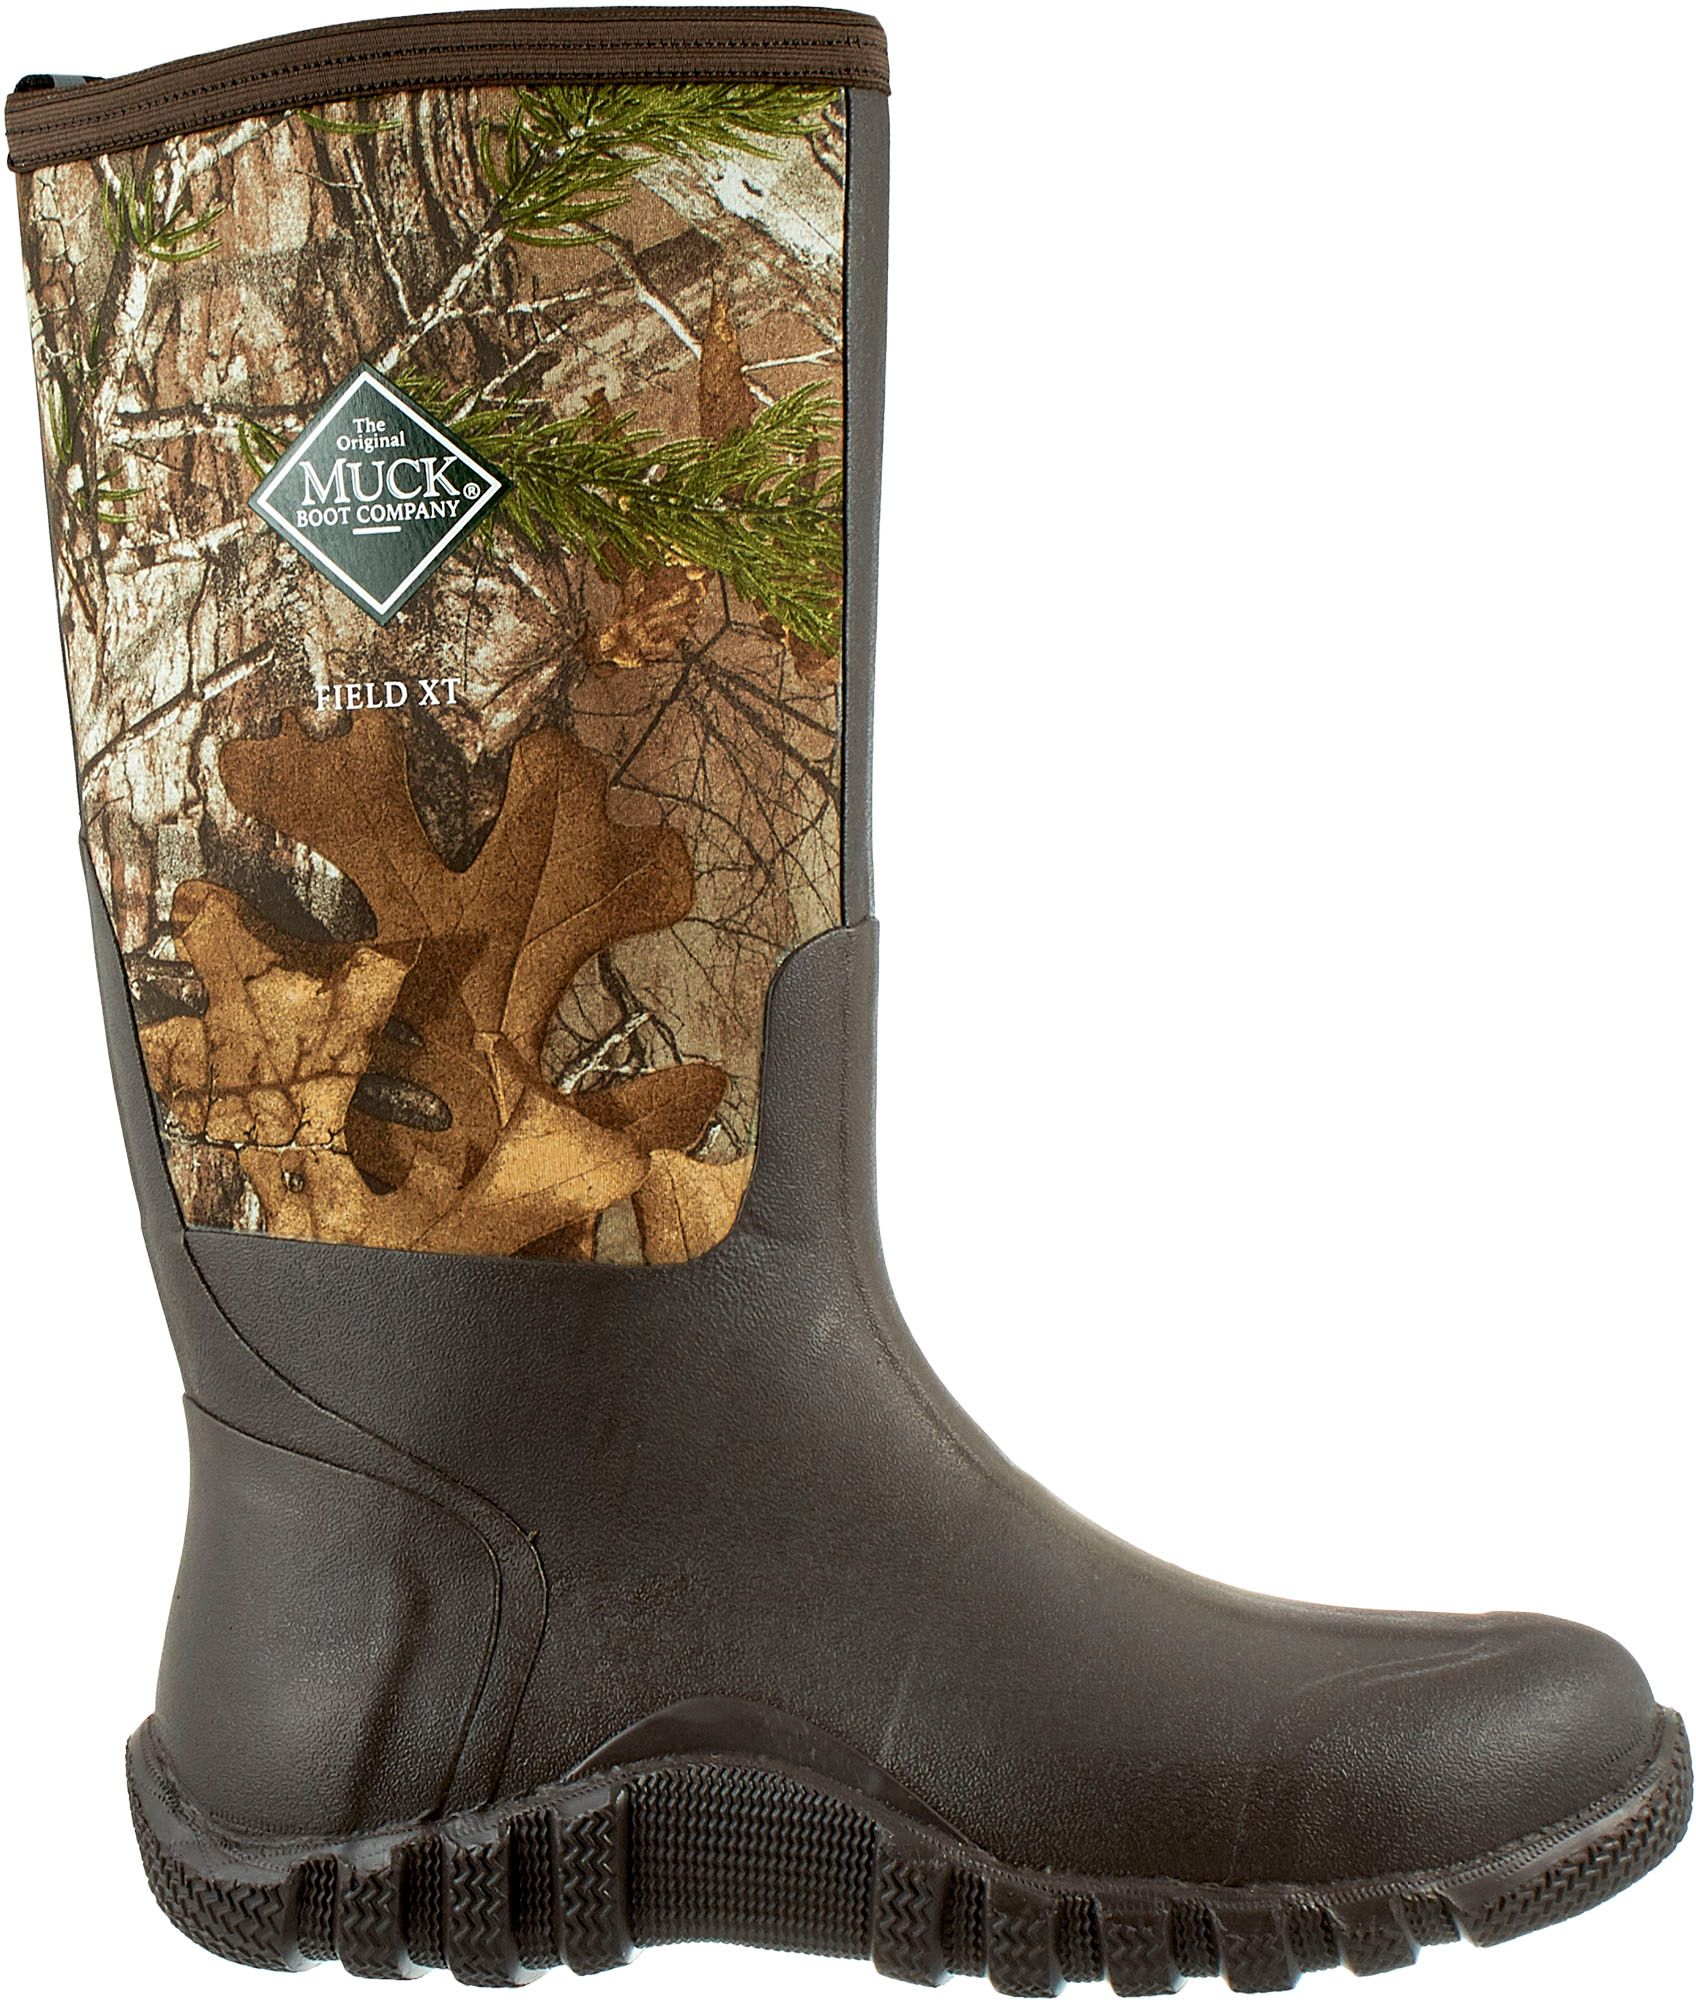 Muck Boot Men's Muck Fieldblazer Rubber Hunting Boots | Field & Stream